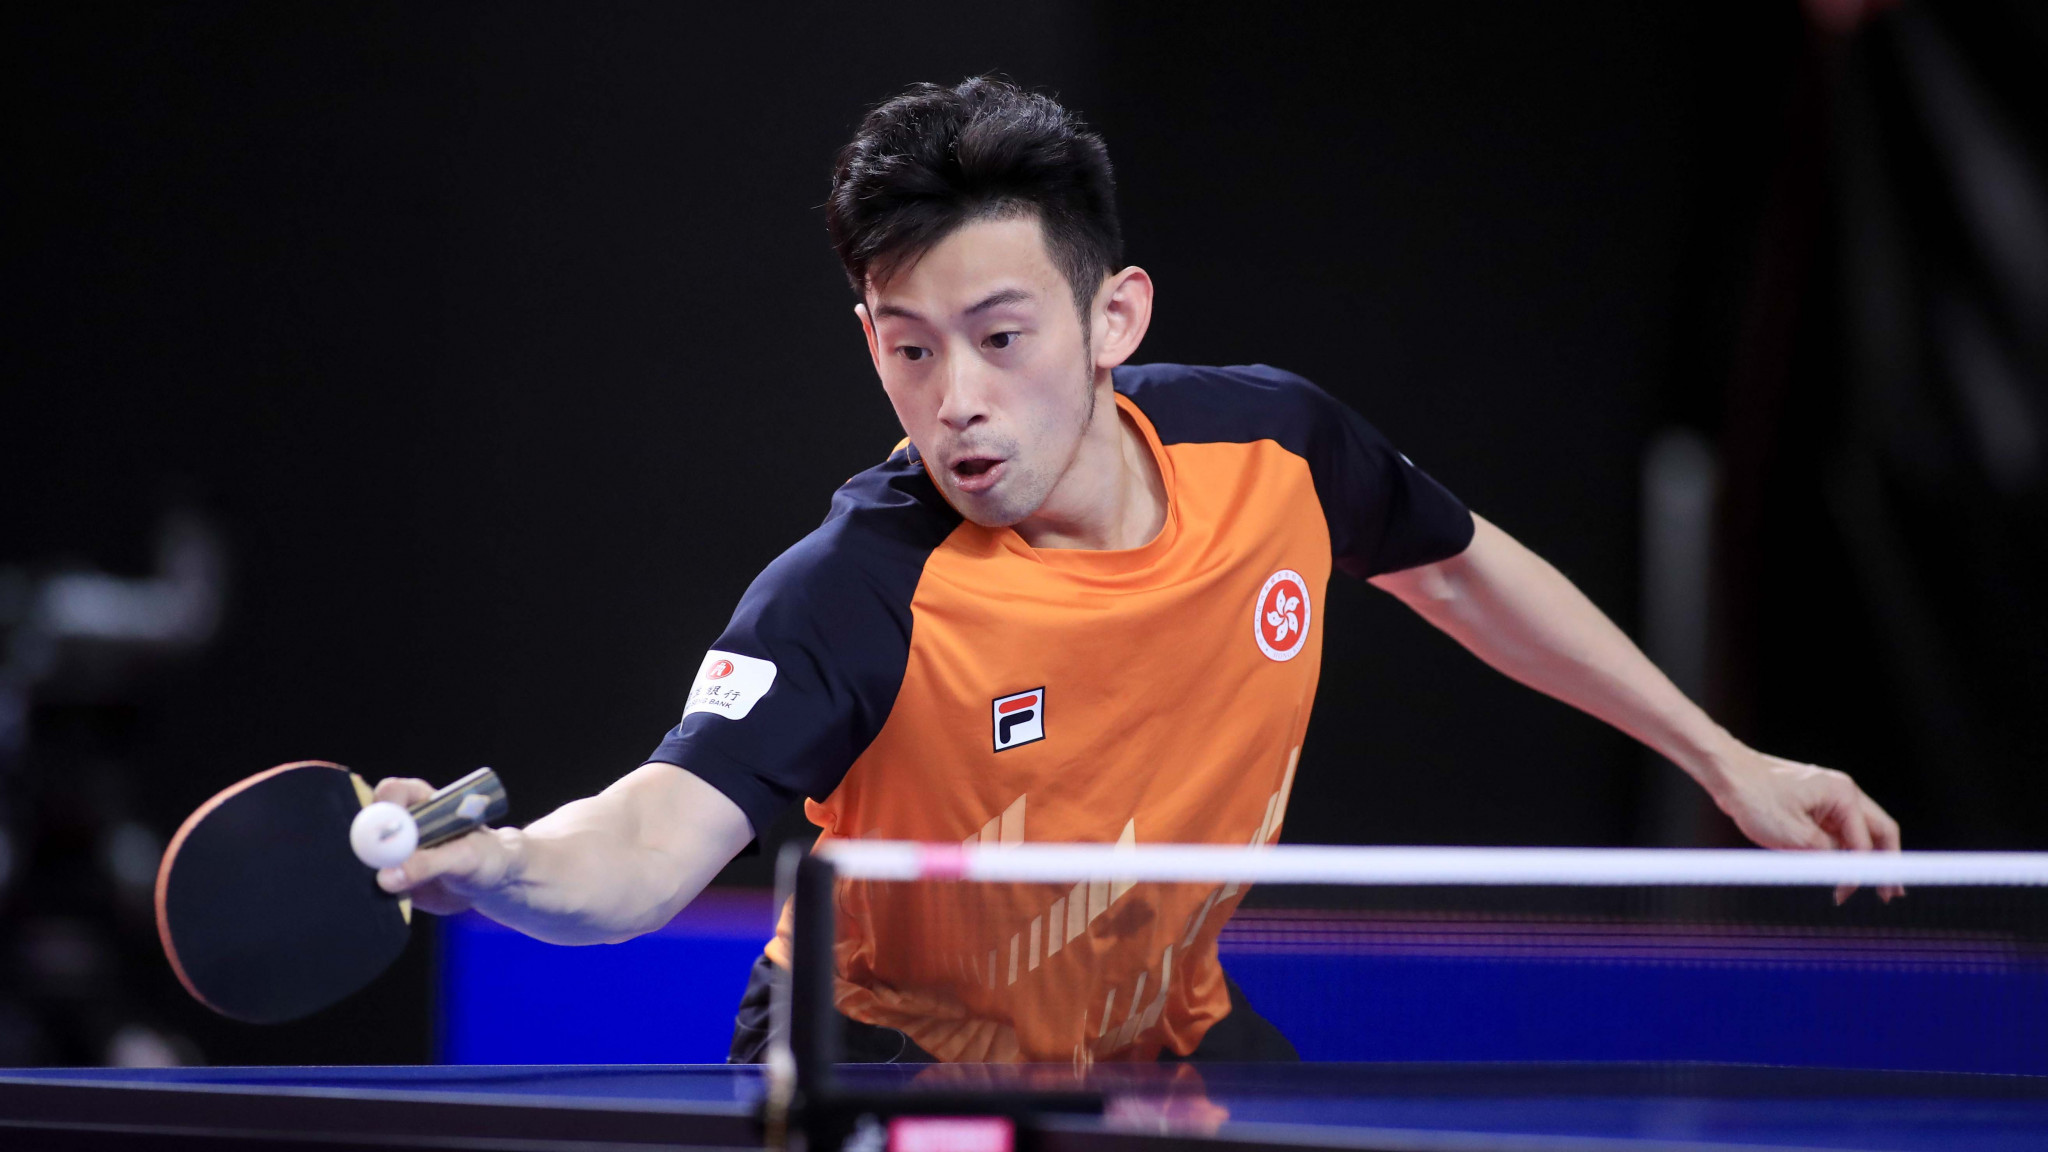 Hong Kong and South Korea book Tokyo 2020 table tennis places at World Team Olympic qualifiers